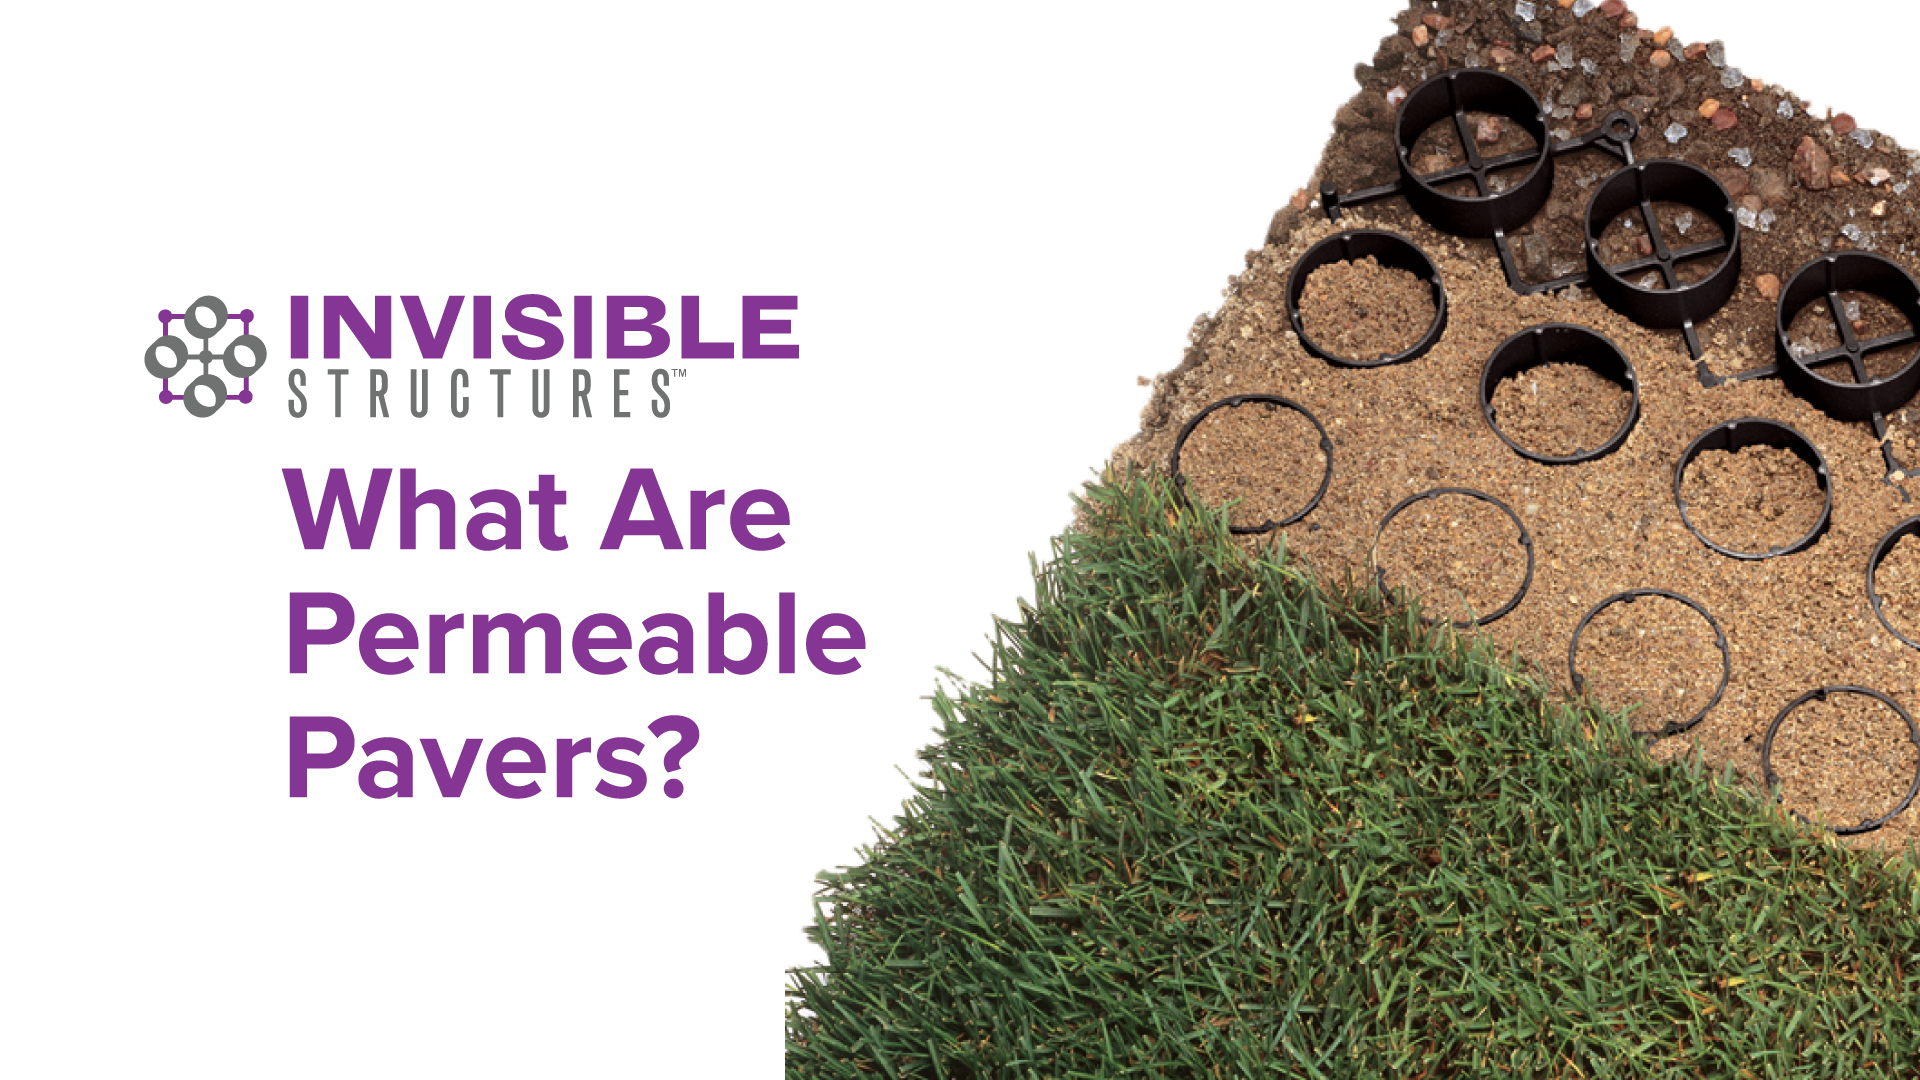 What Are Permeable Pavers?